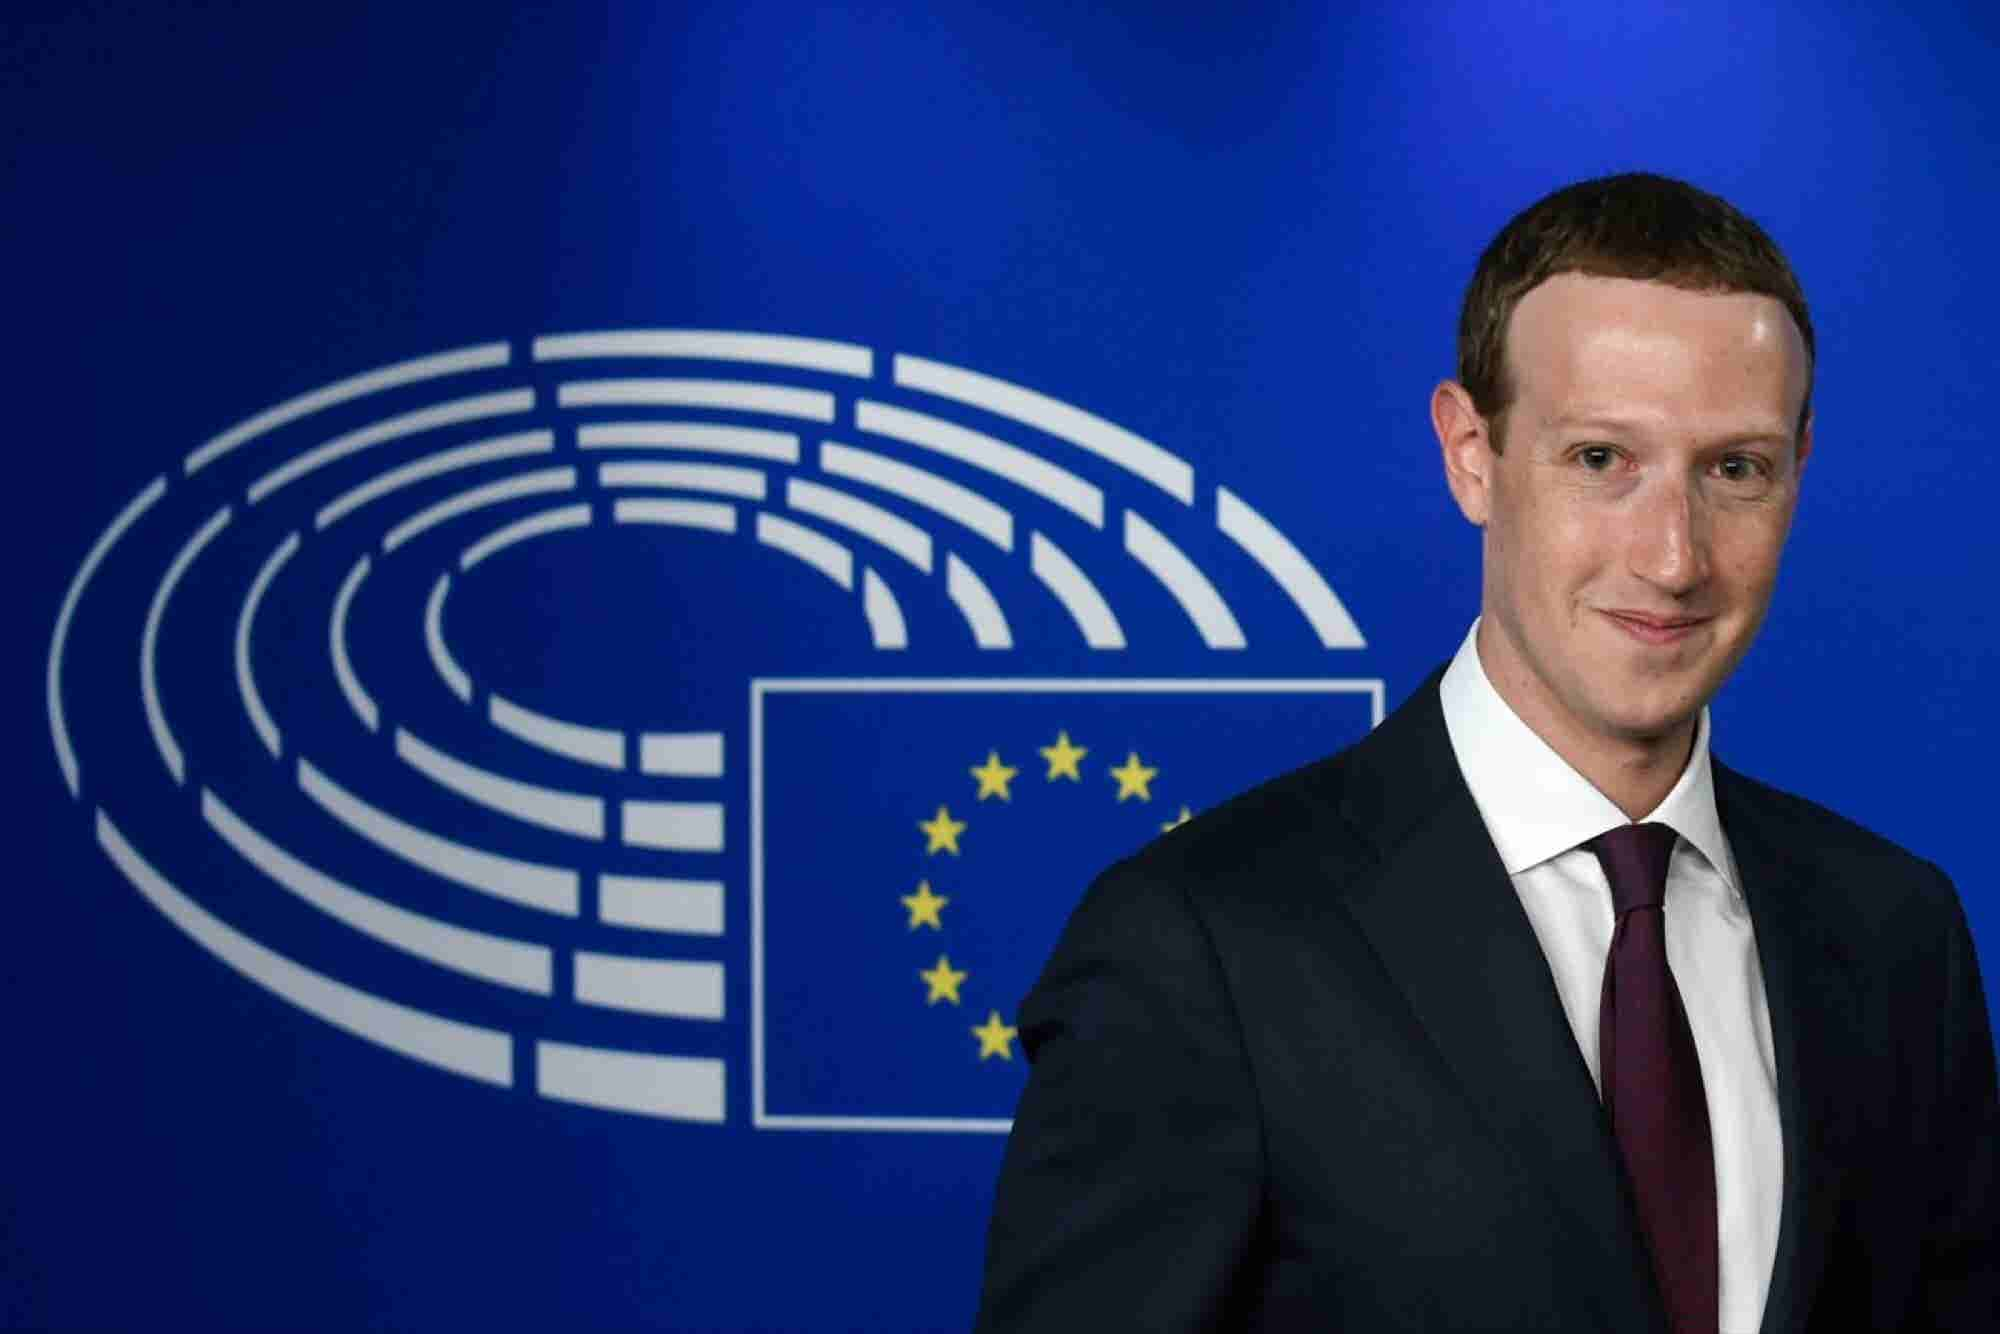 The Key Takeaways from Mark Zuckerberg's Meeting With the EU